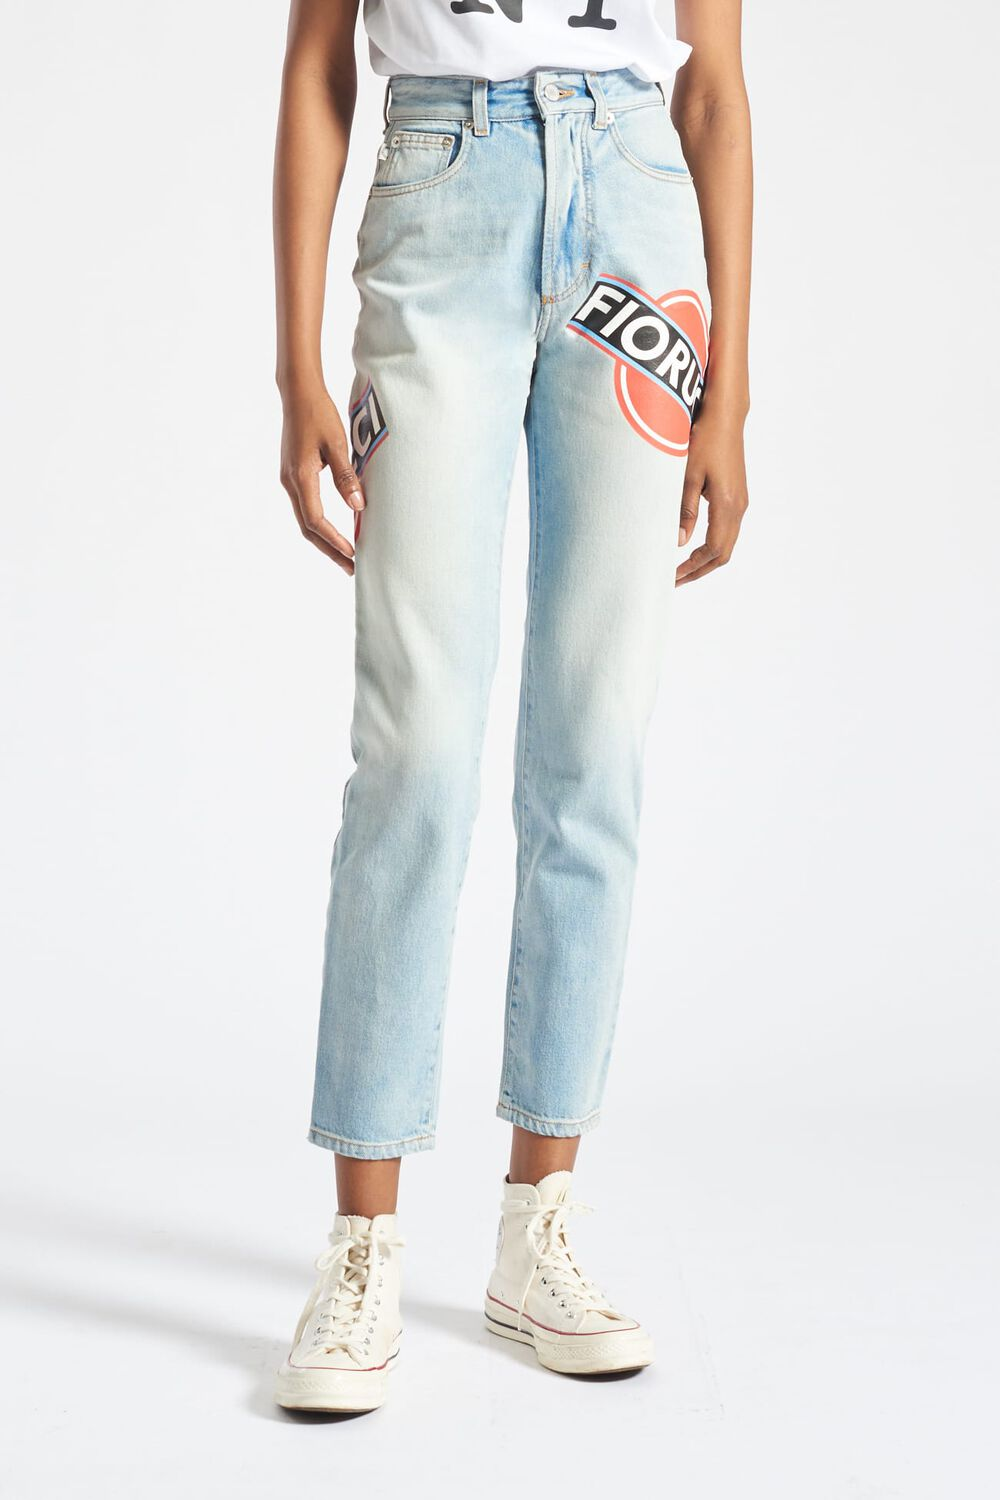 Martini Graphic Logo Tara Tapered Jeans Blue